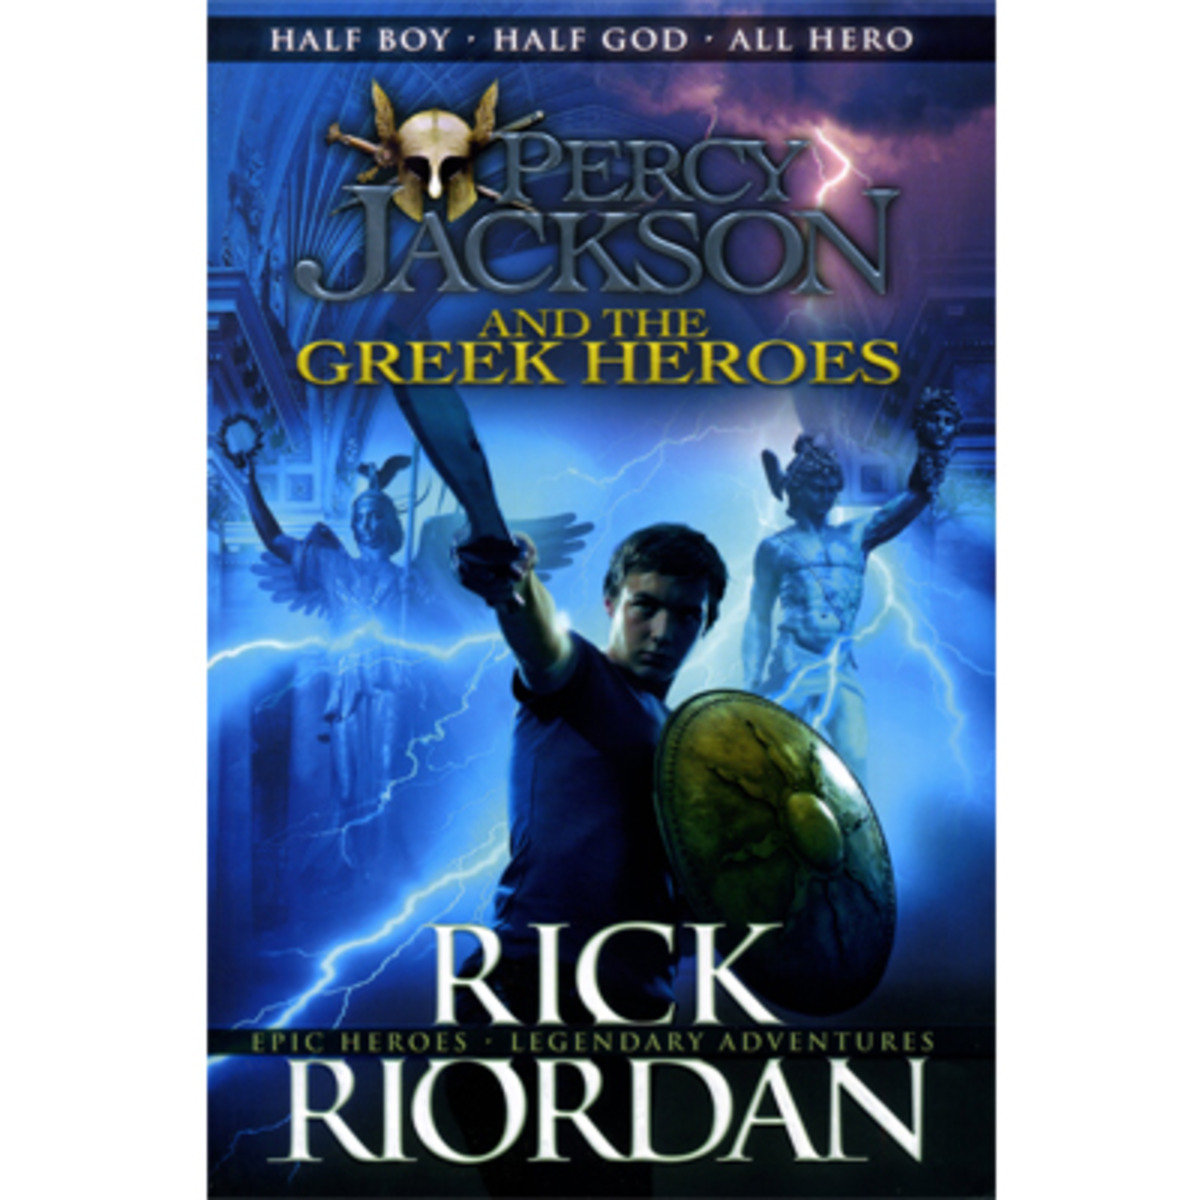 Percy Jackson and the Greek Heroes #7 9780141360515